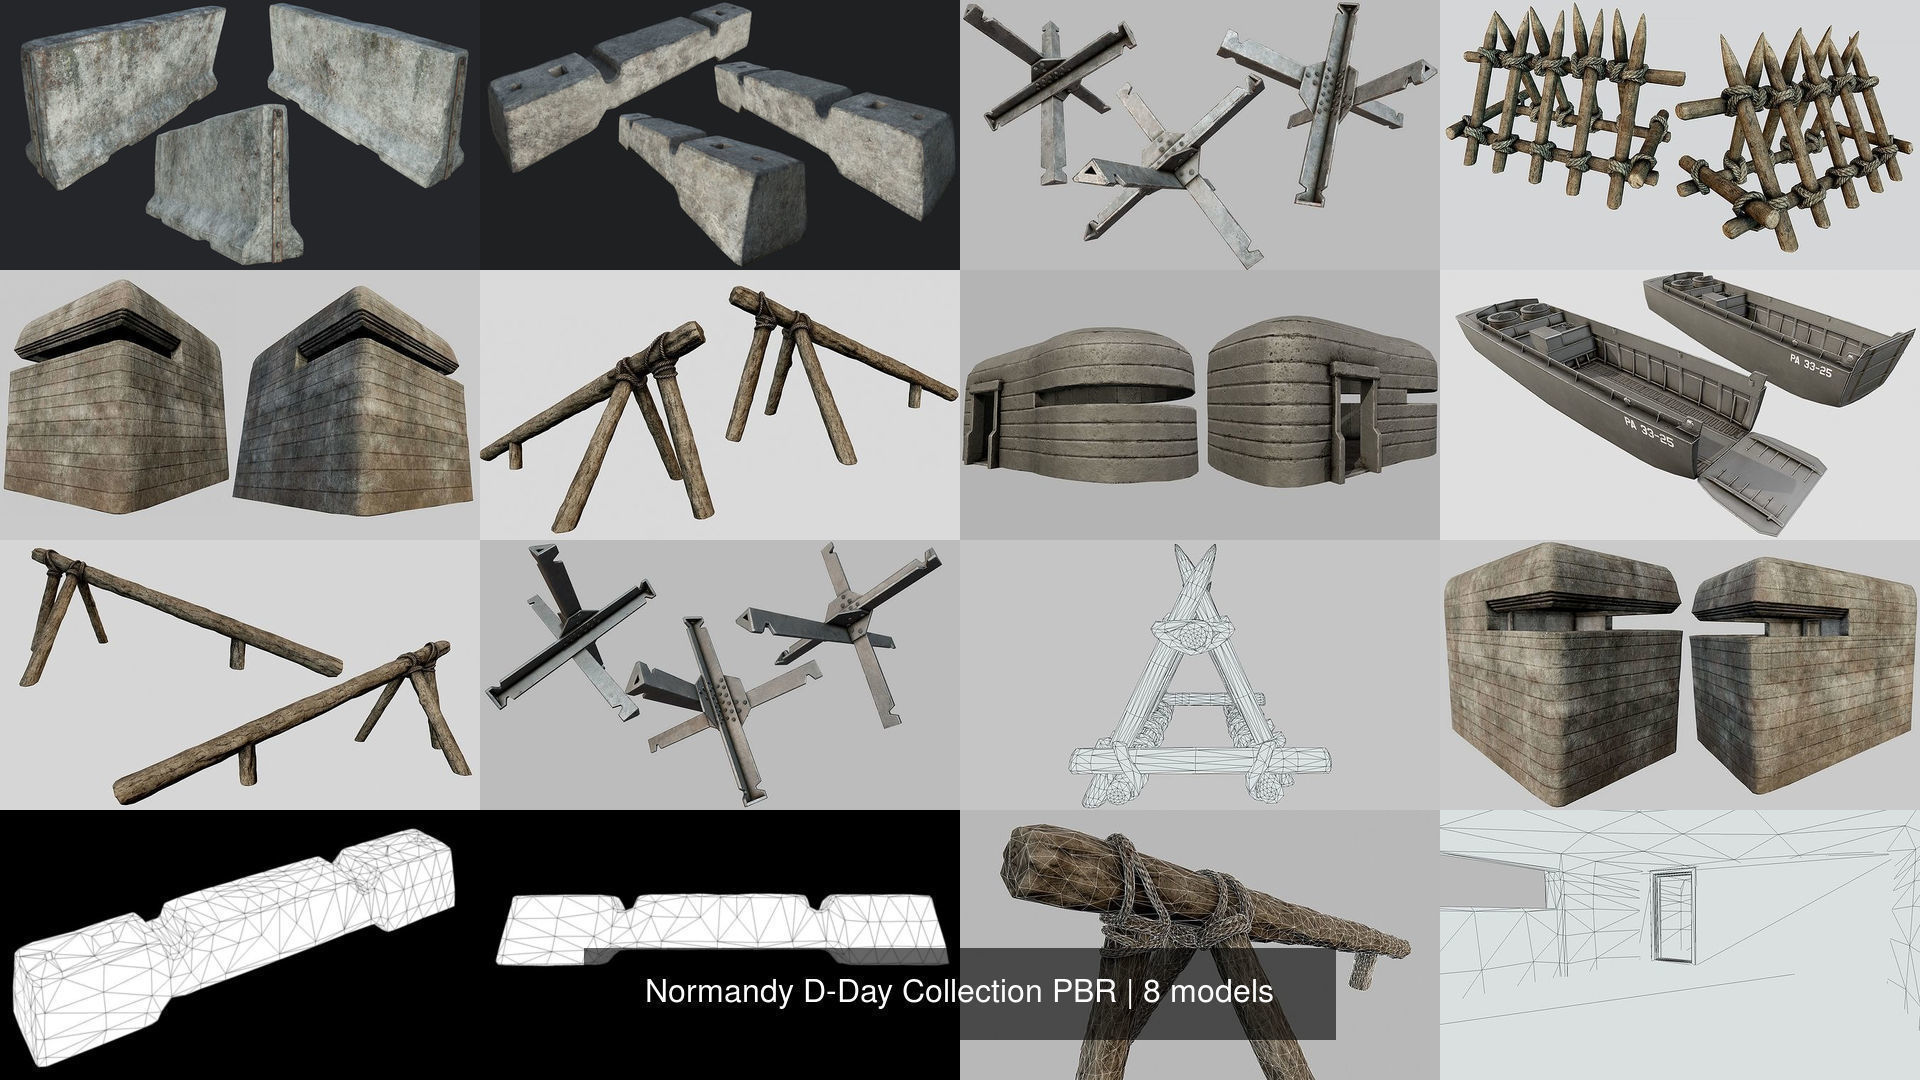 Normandy D-Day Collection PBR